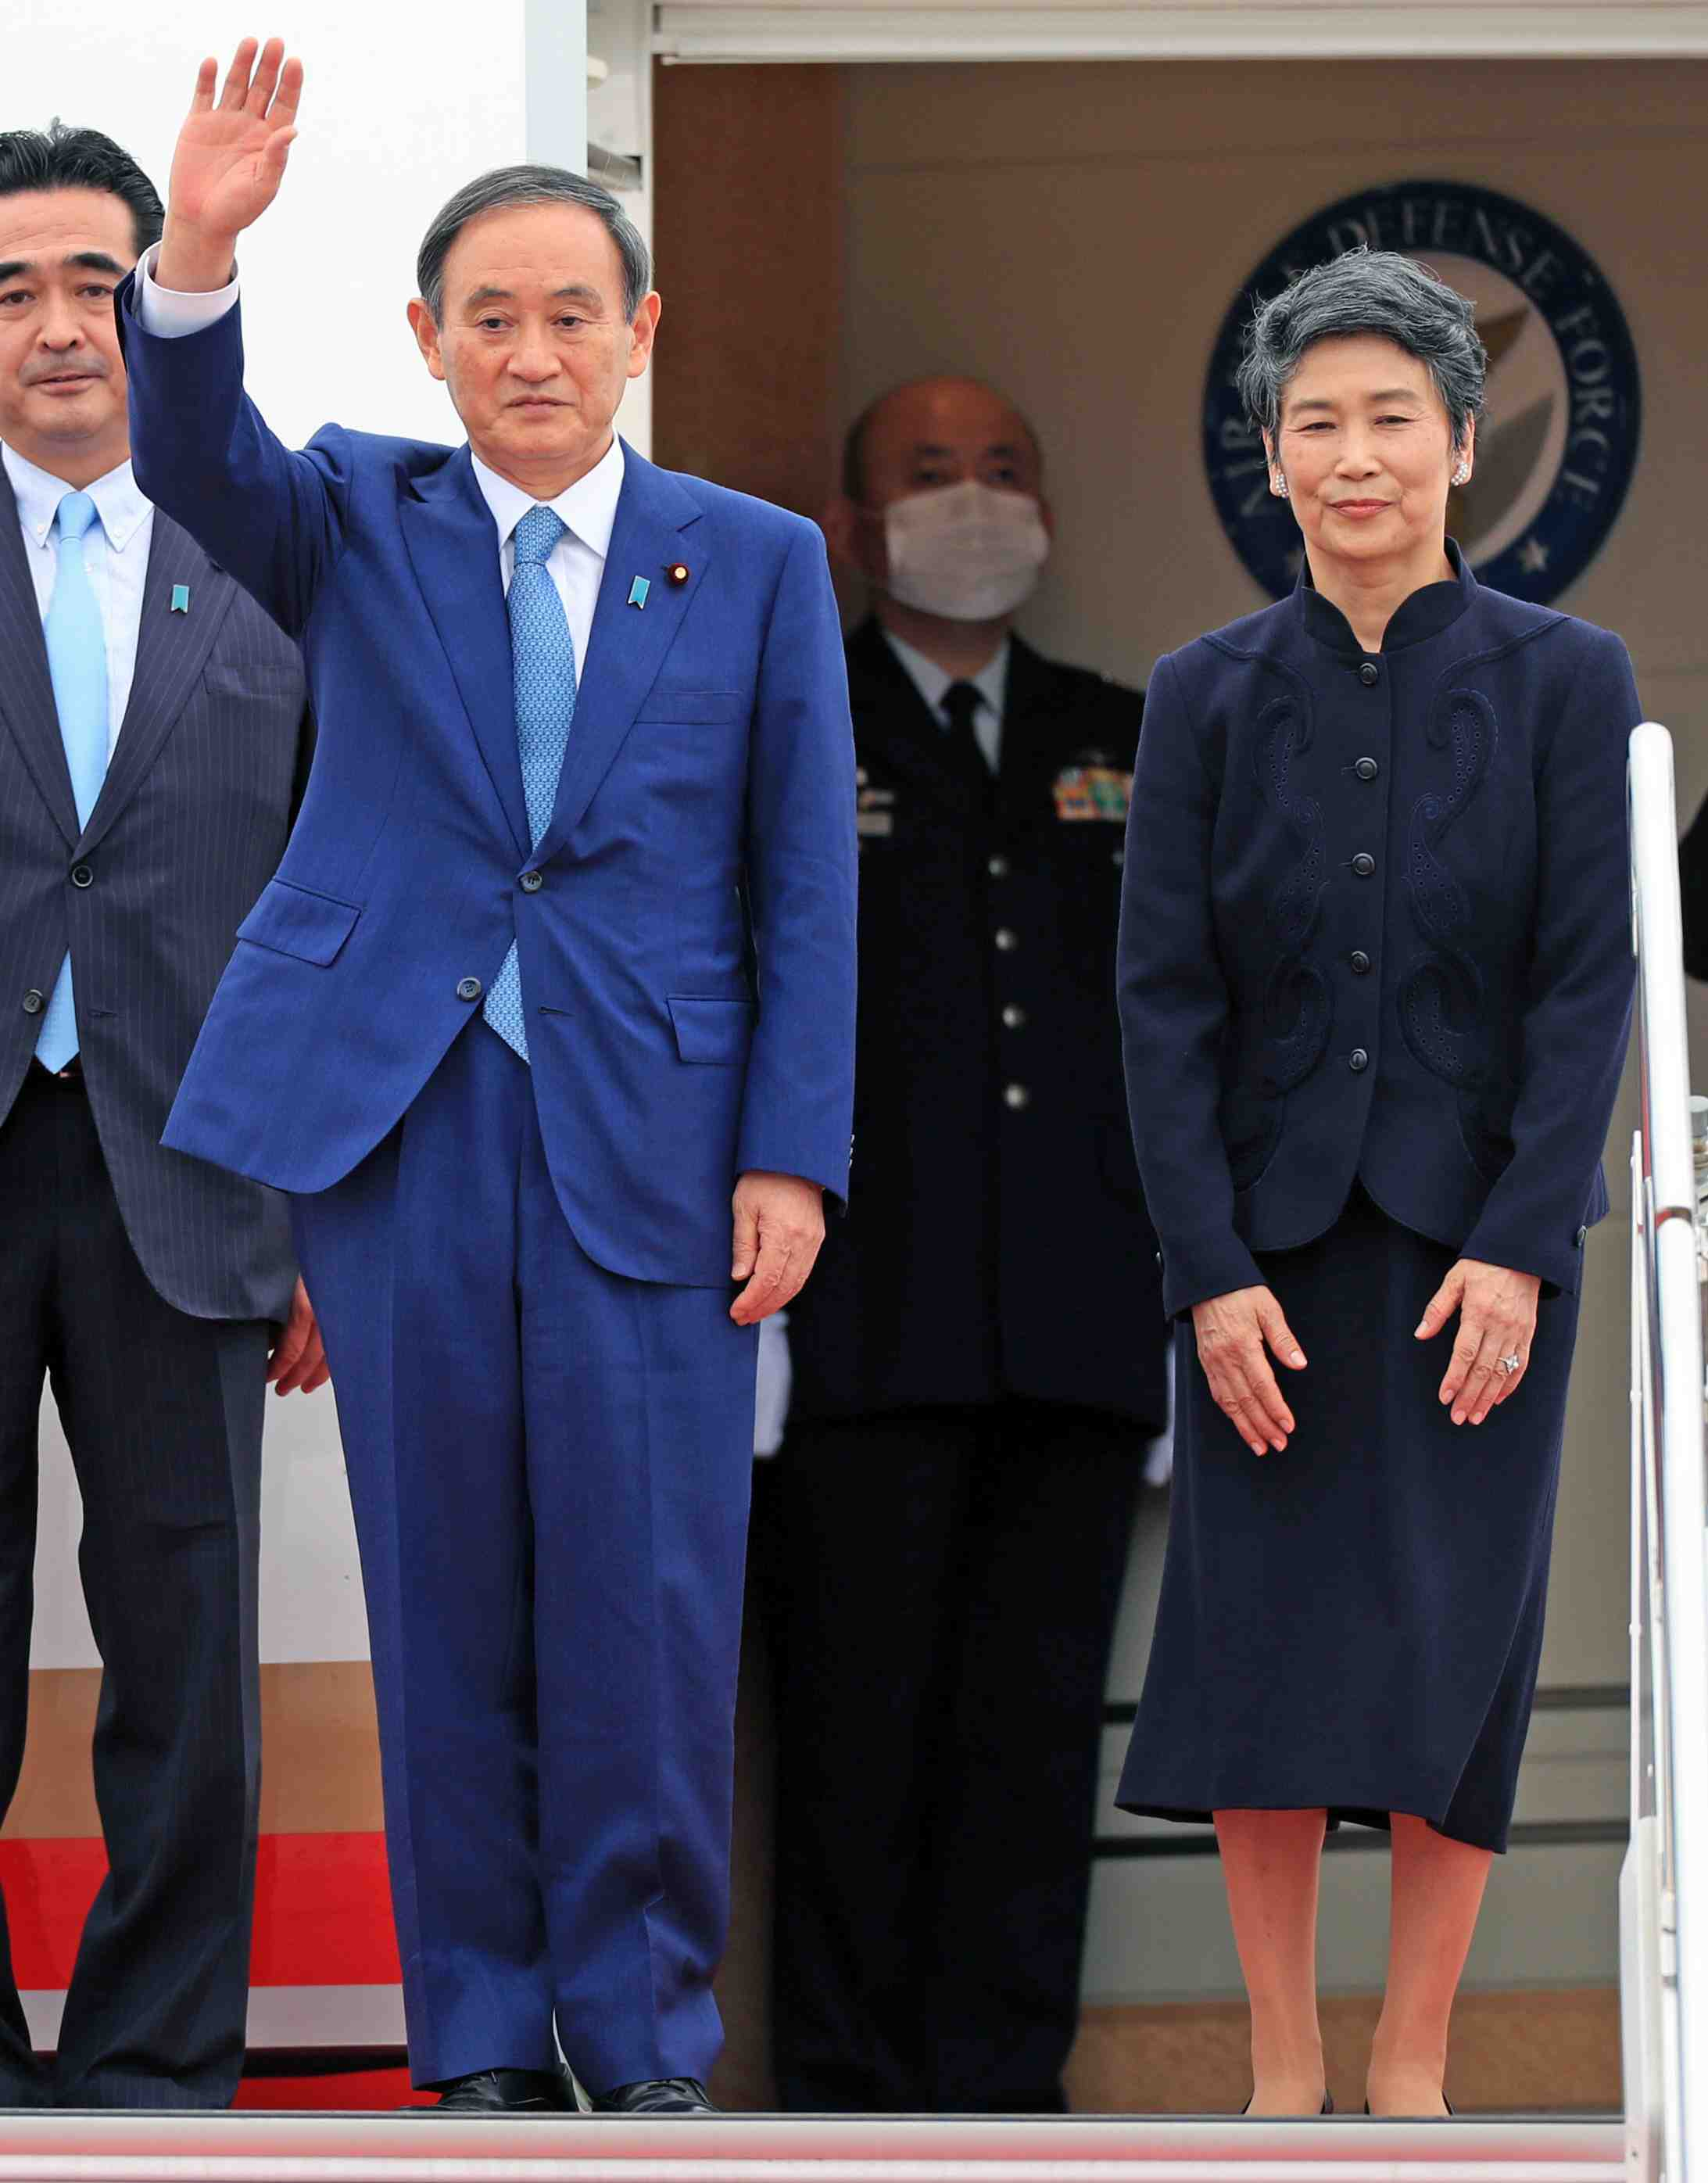 Prime Minister Yoshihide Suga's Trip to South East Asia 008